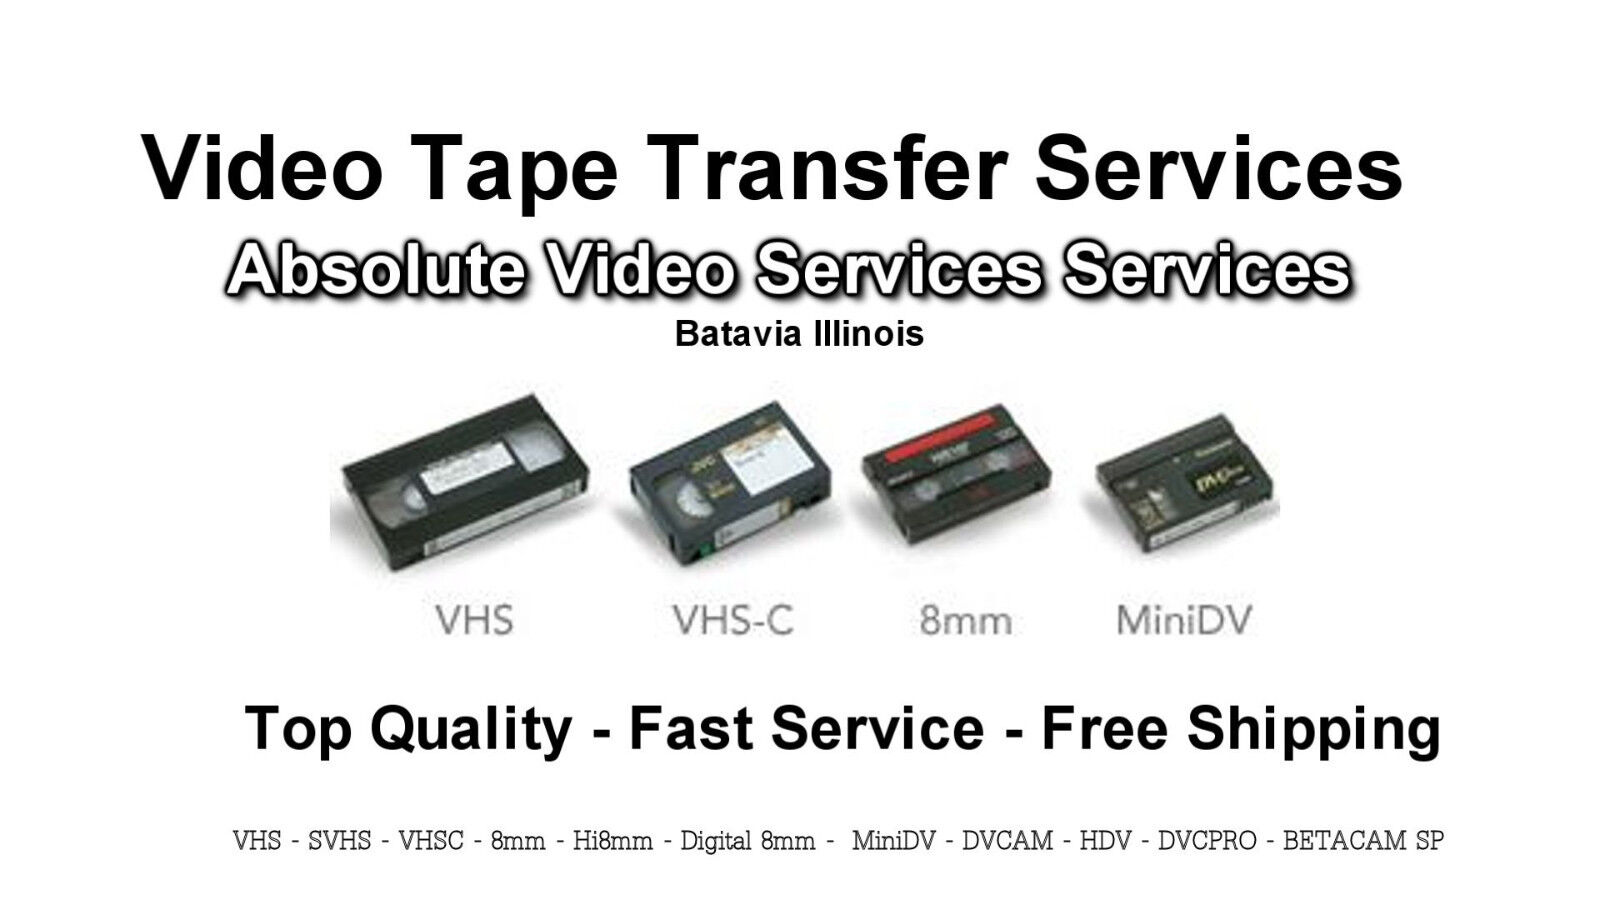 Video Tape Transfer Service to DVD VHS 8MM MiniDV 25 Tape Package Special